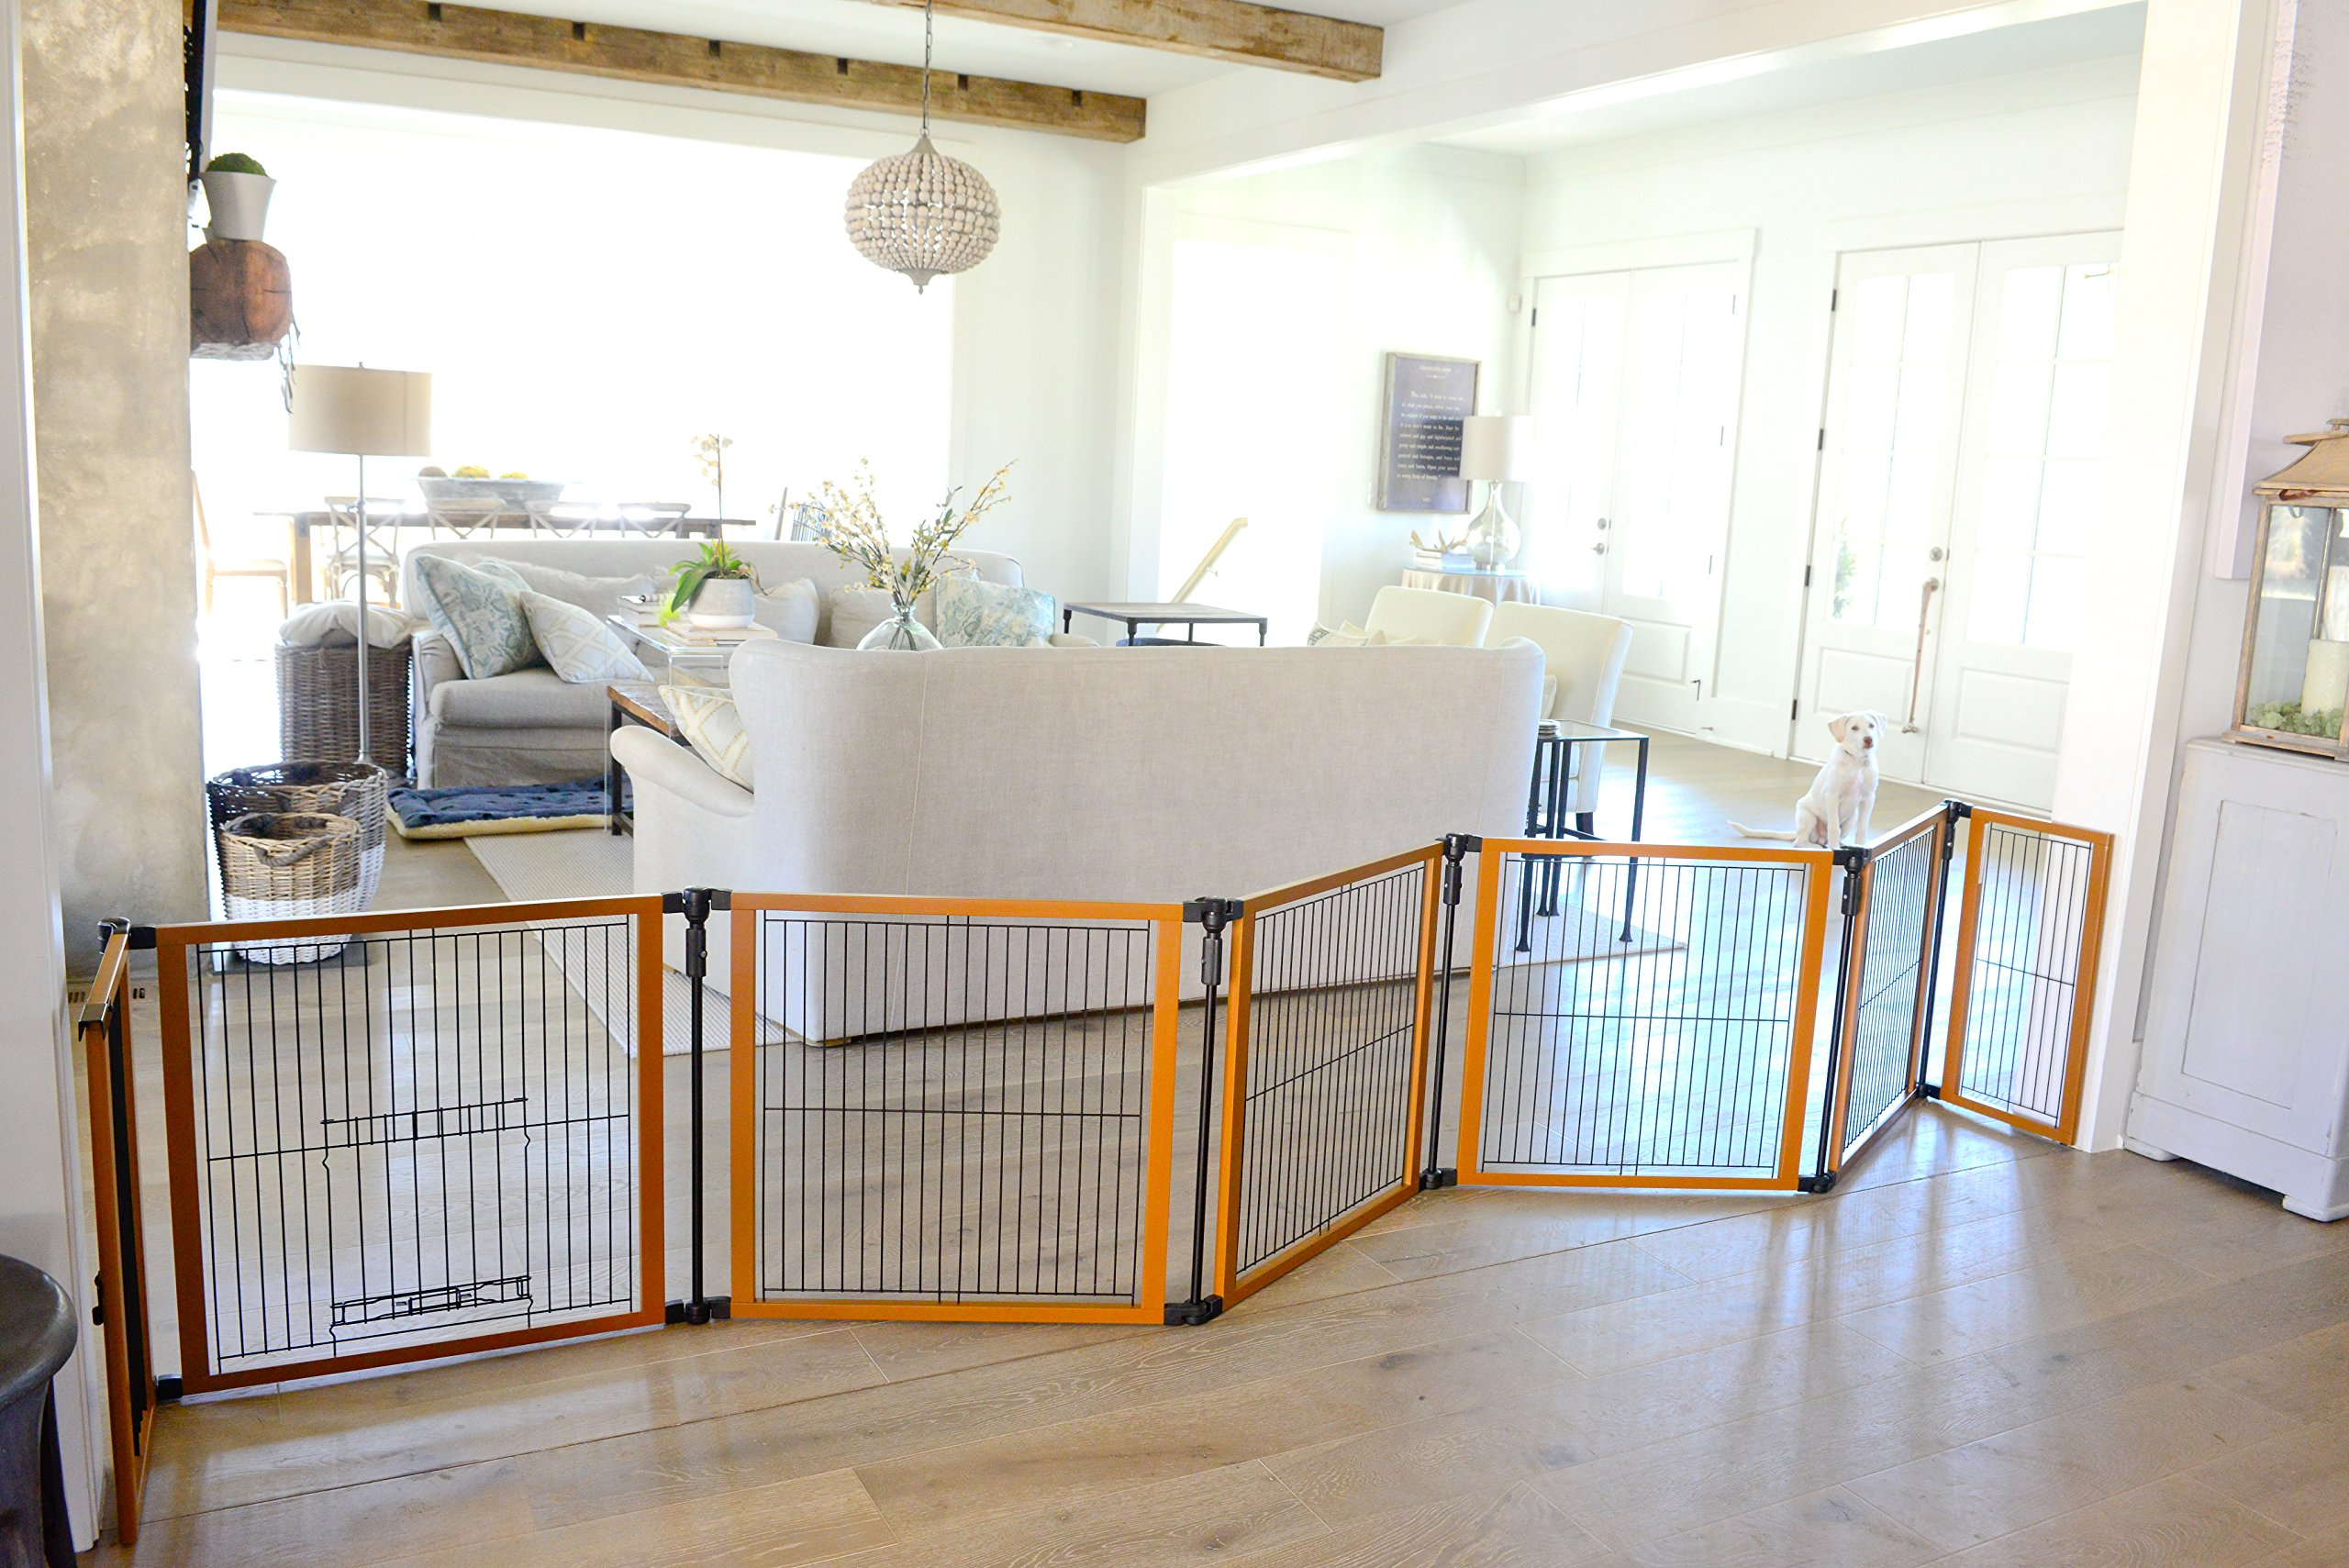 5 Pet Gates That Could Be Used For Garage Door Openings 26